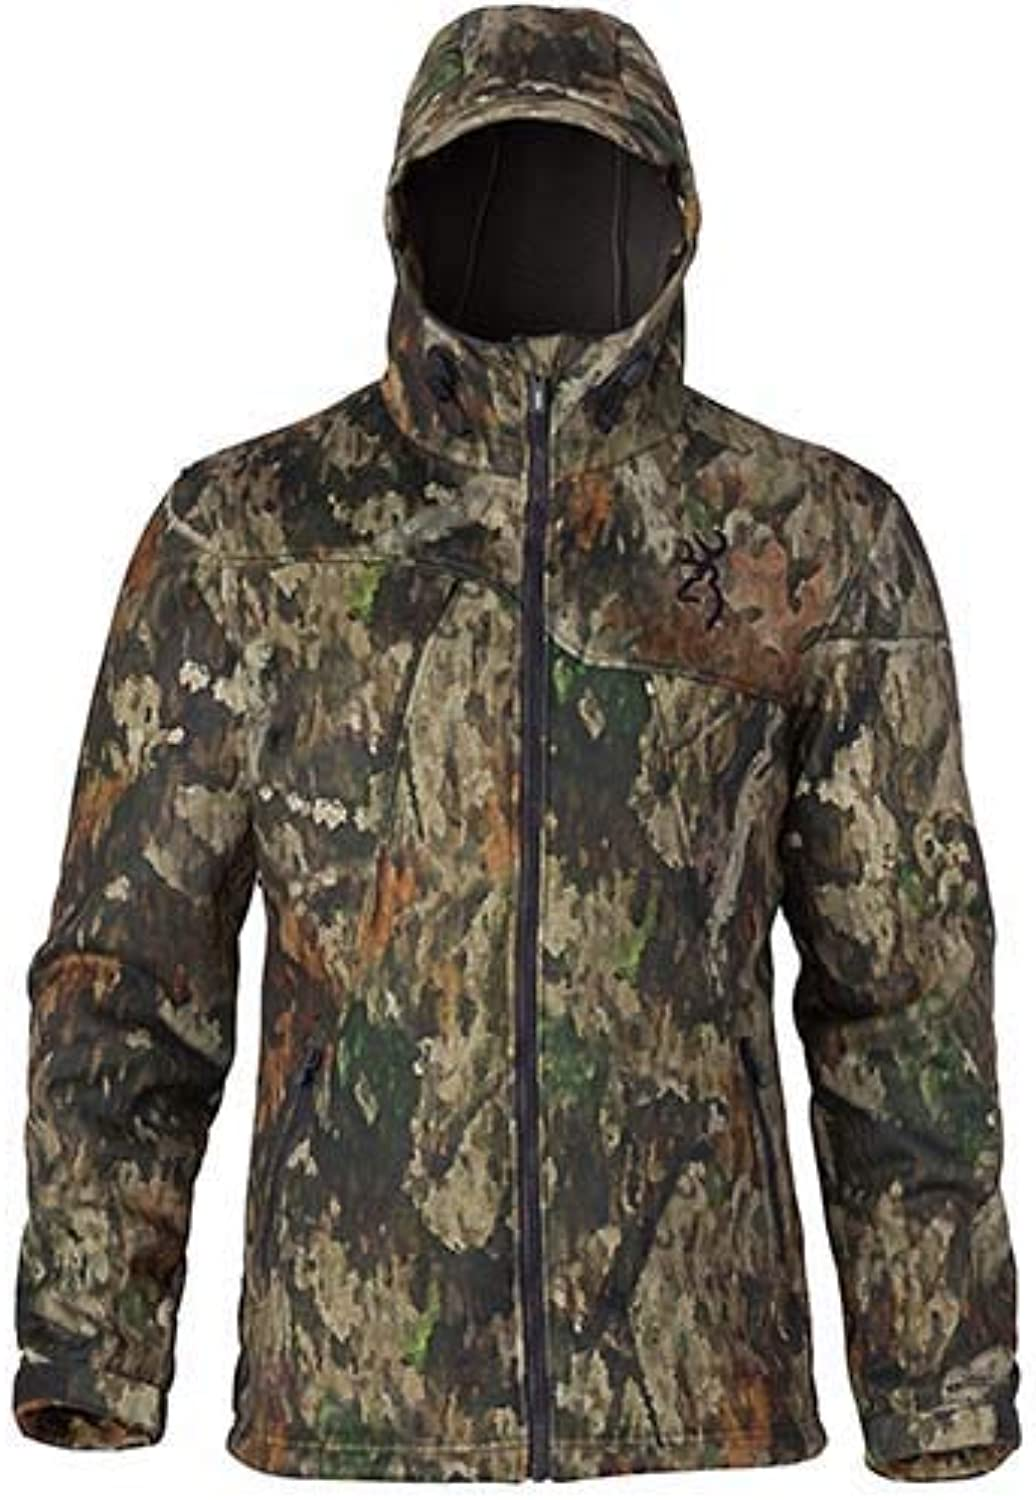 Browning 3048523203 Hell's Canyon Speed HellfireFm Insulated Gore Windstopper Jacket, Atacs Tree Dirt Extreme, Large